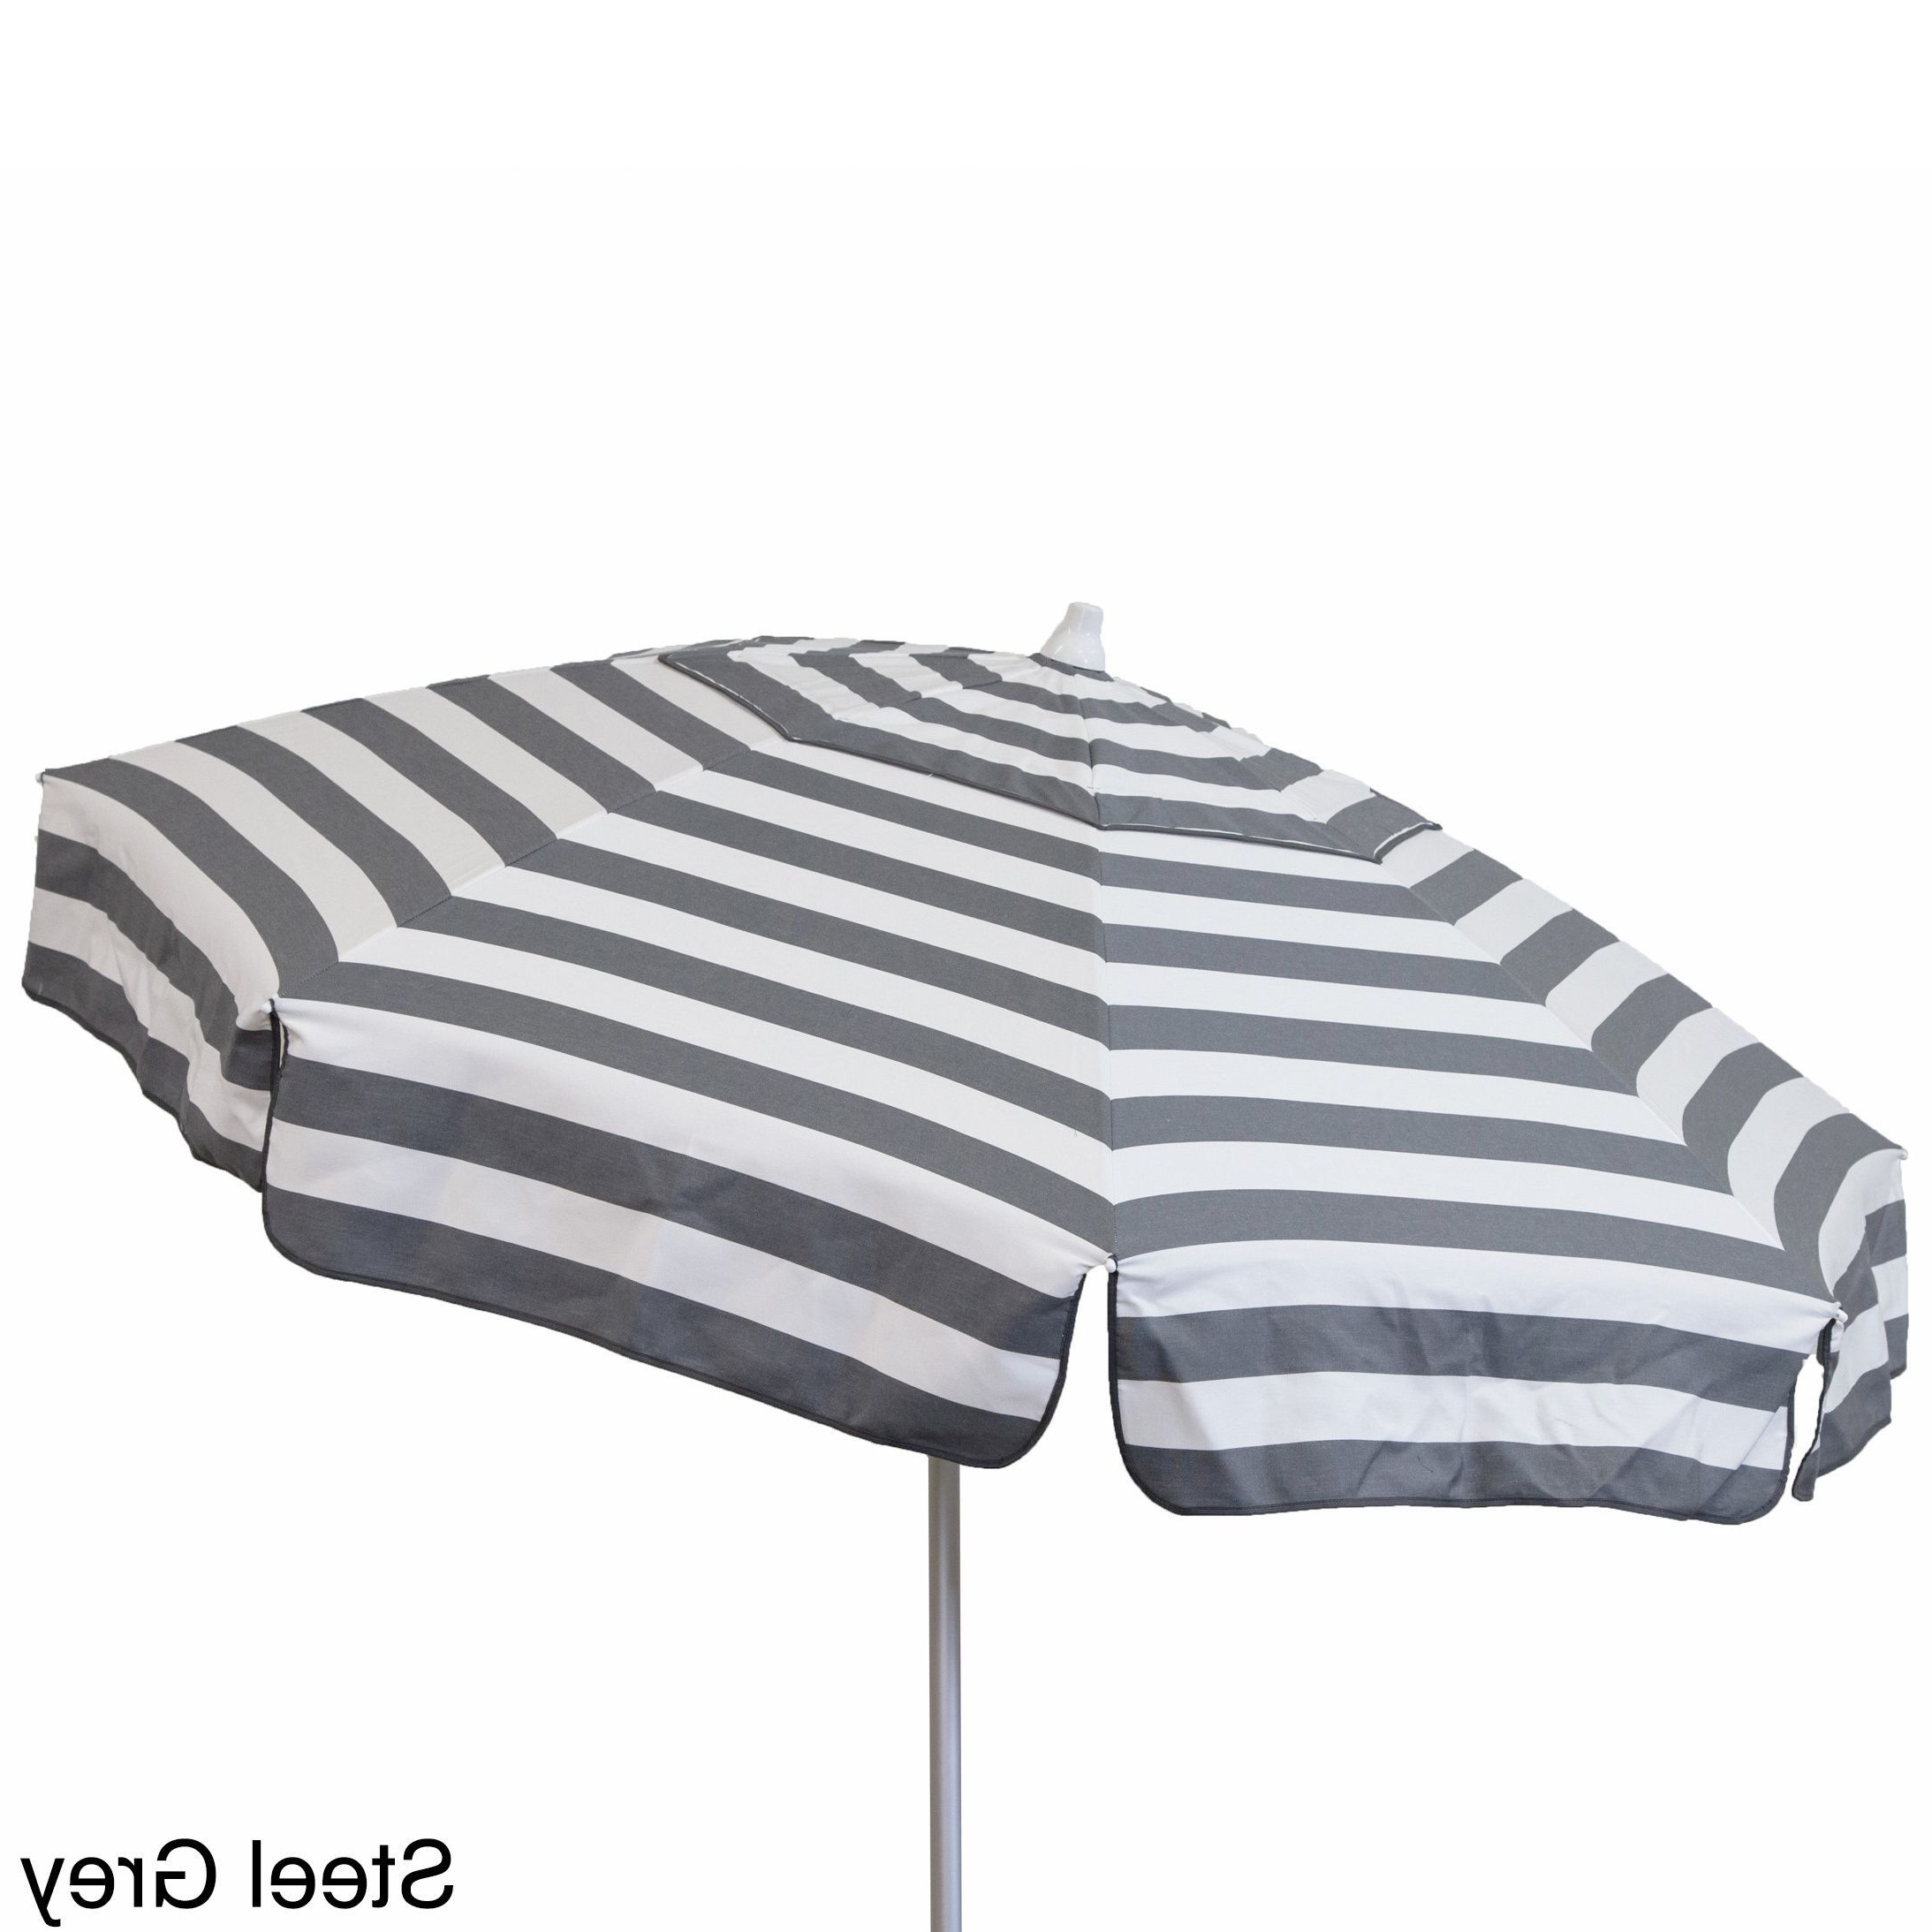 Italian Drape Umbrellas With Recent Euro 6 Foot Striped Umbrella (Steel Grey And White – Beach Pole (View 19 of 20)